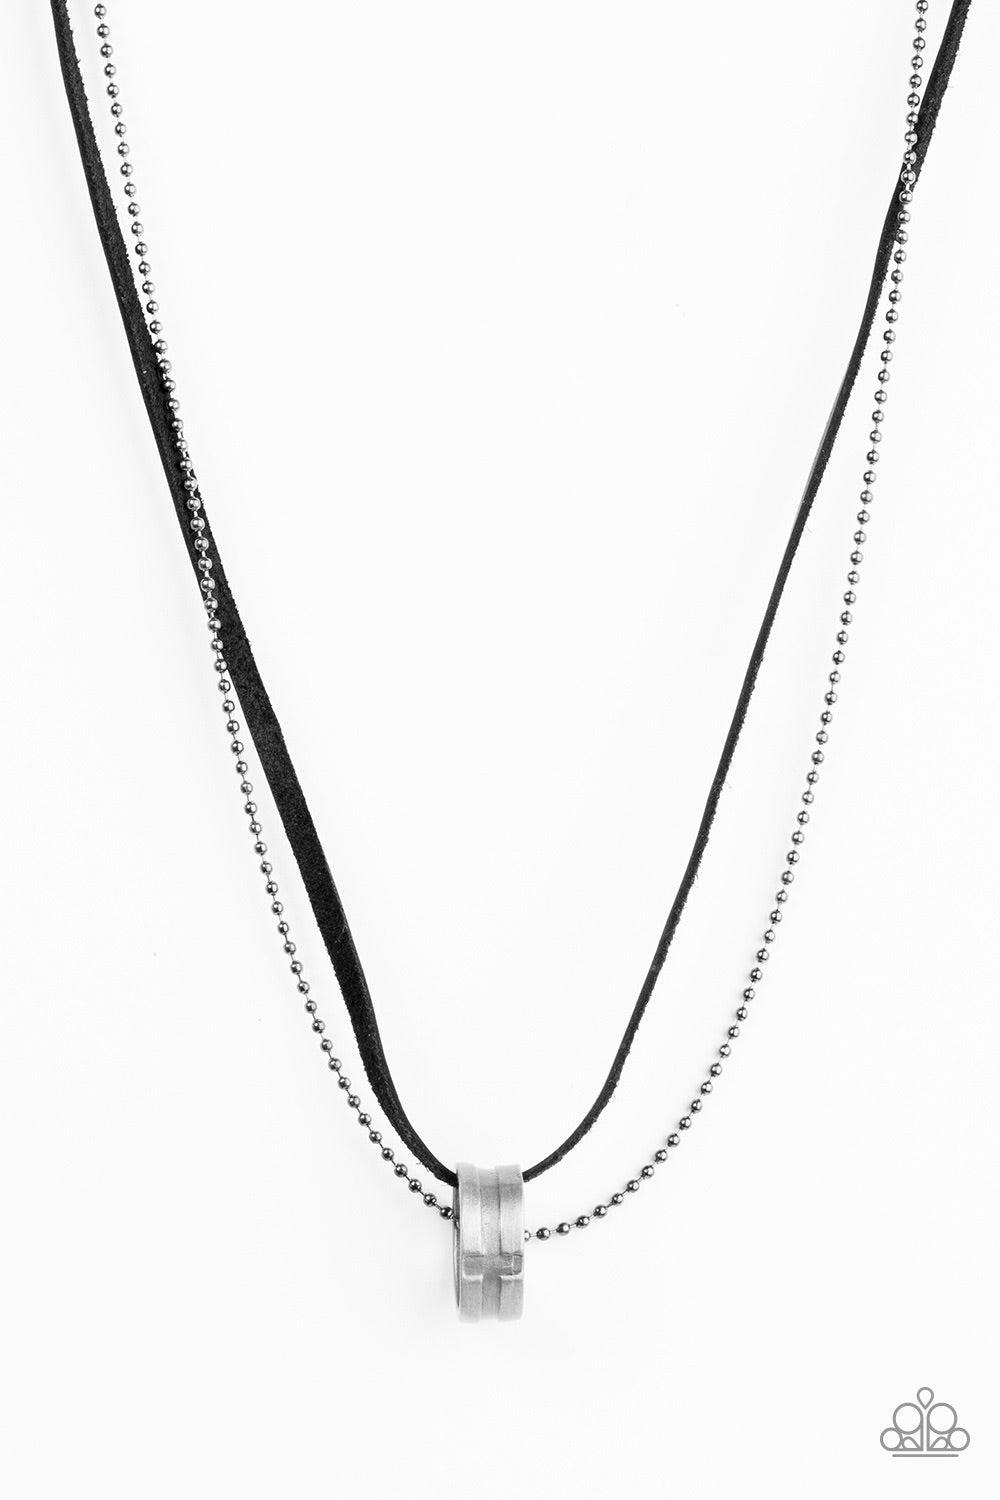 The Ring Bearer Men's Black Leather Necklace - Paparazzi - JewelTonez Jewelry